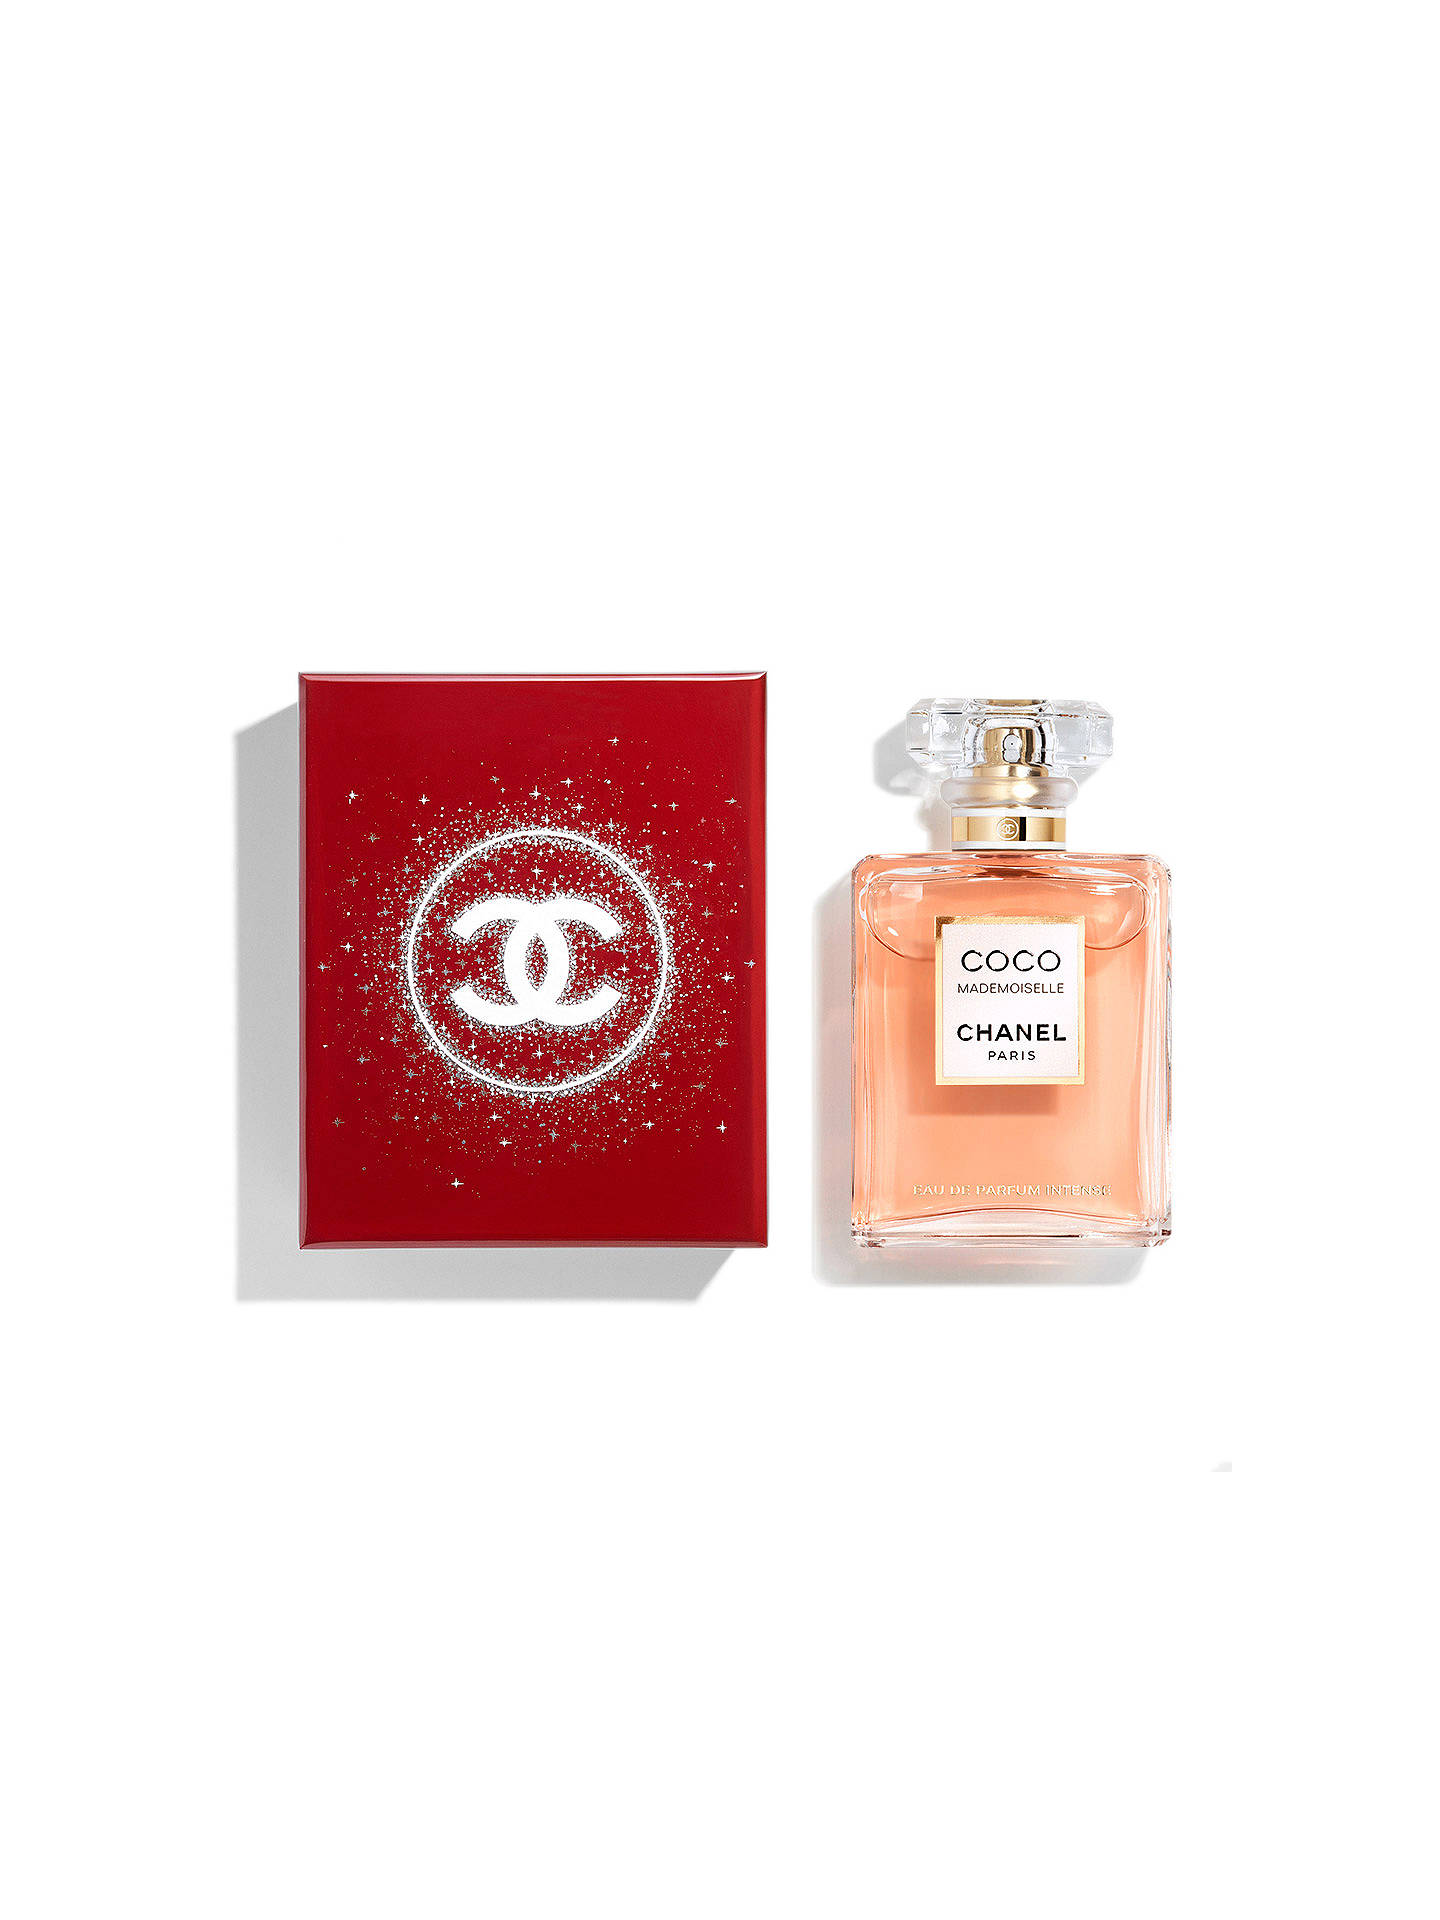 de90af89d5521c Buy CHANEL COCO MADEMOISELLE Eau de Parfum Intense Spray, 100ml with Gift  Box Online at